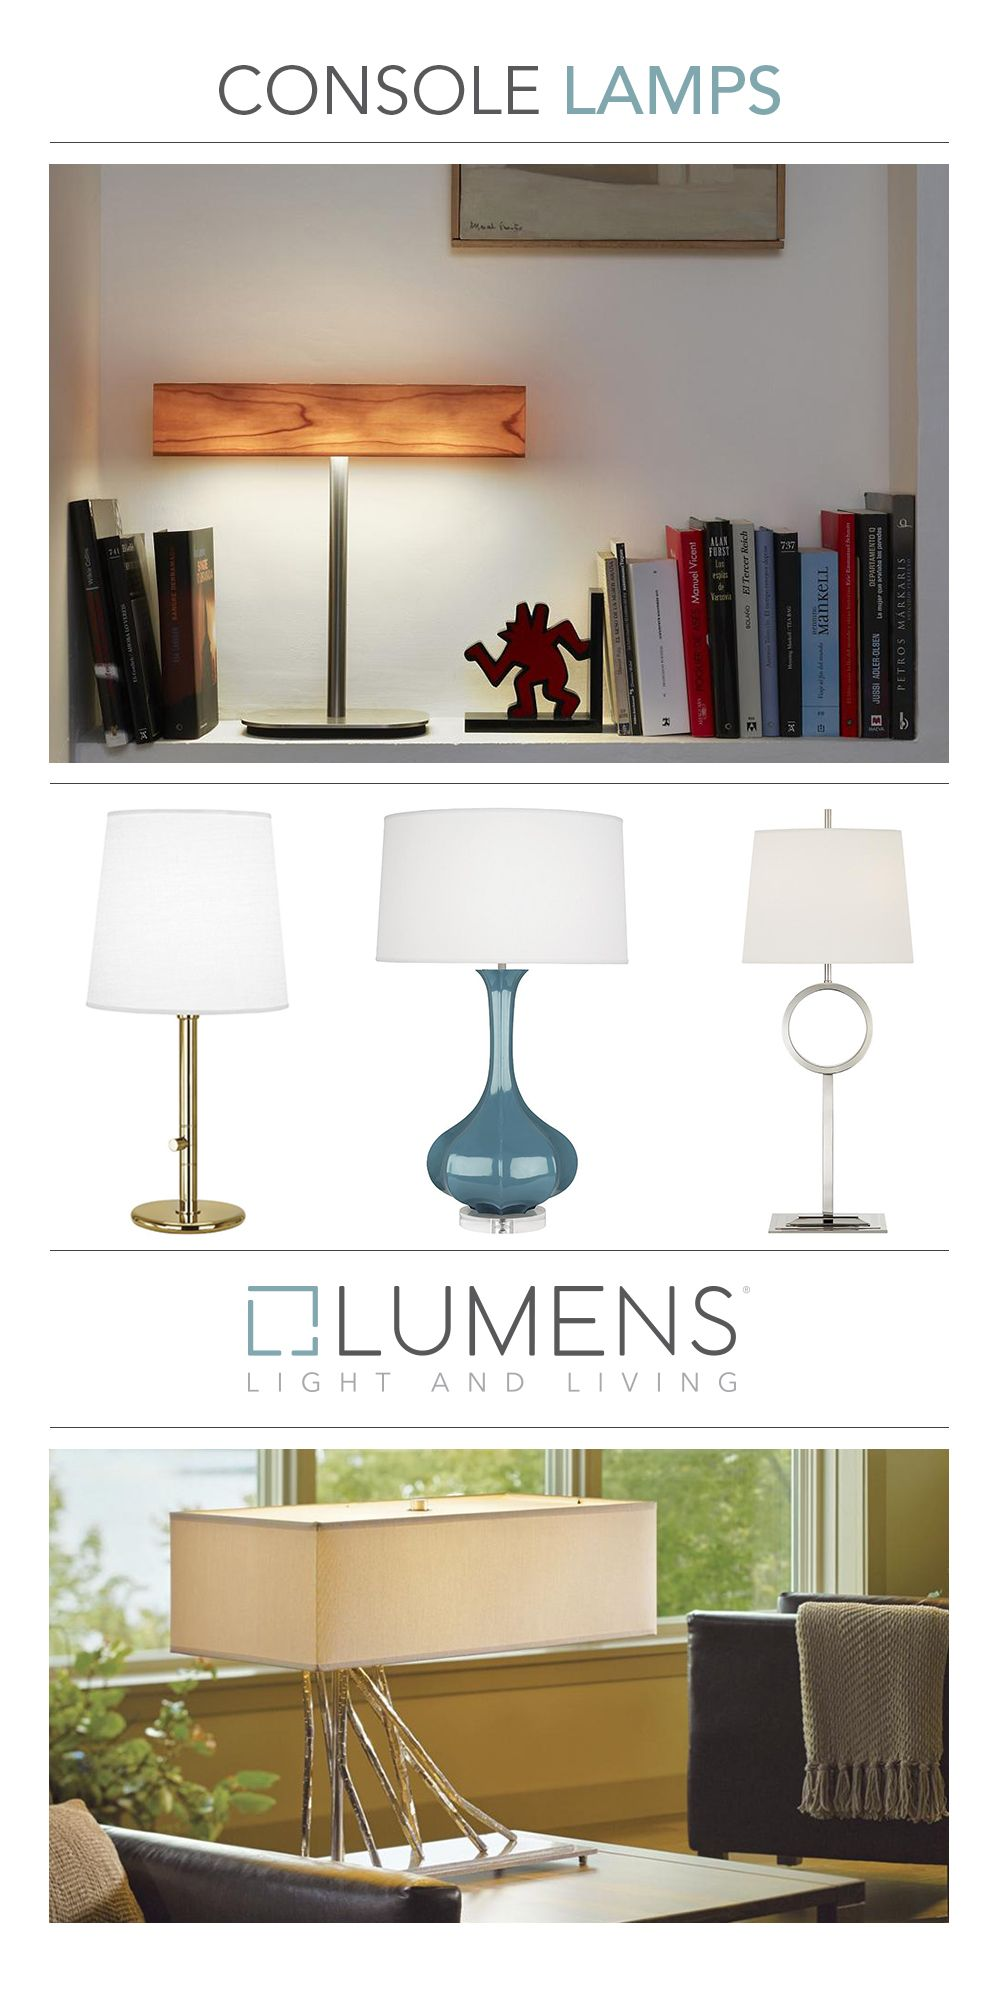 Typically larger than a bedside table lamp and often in a